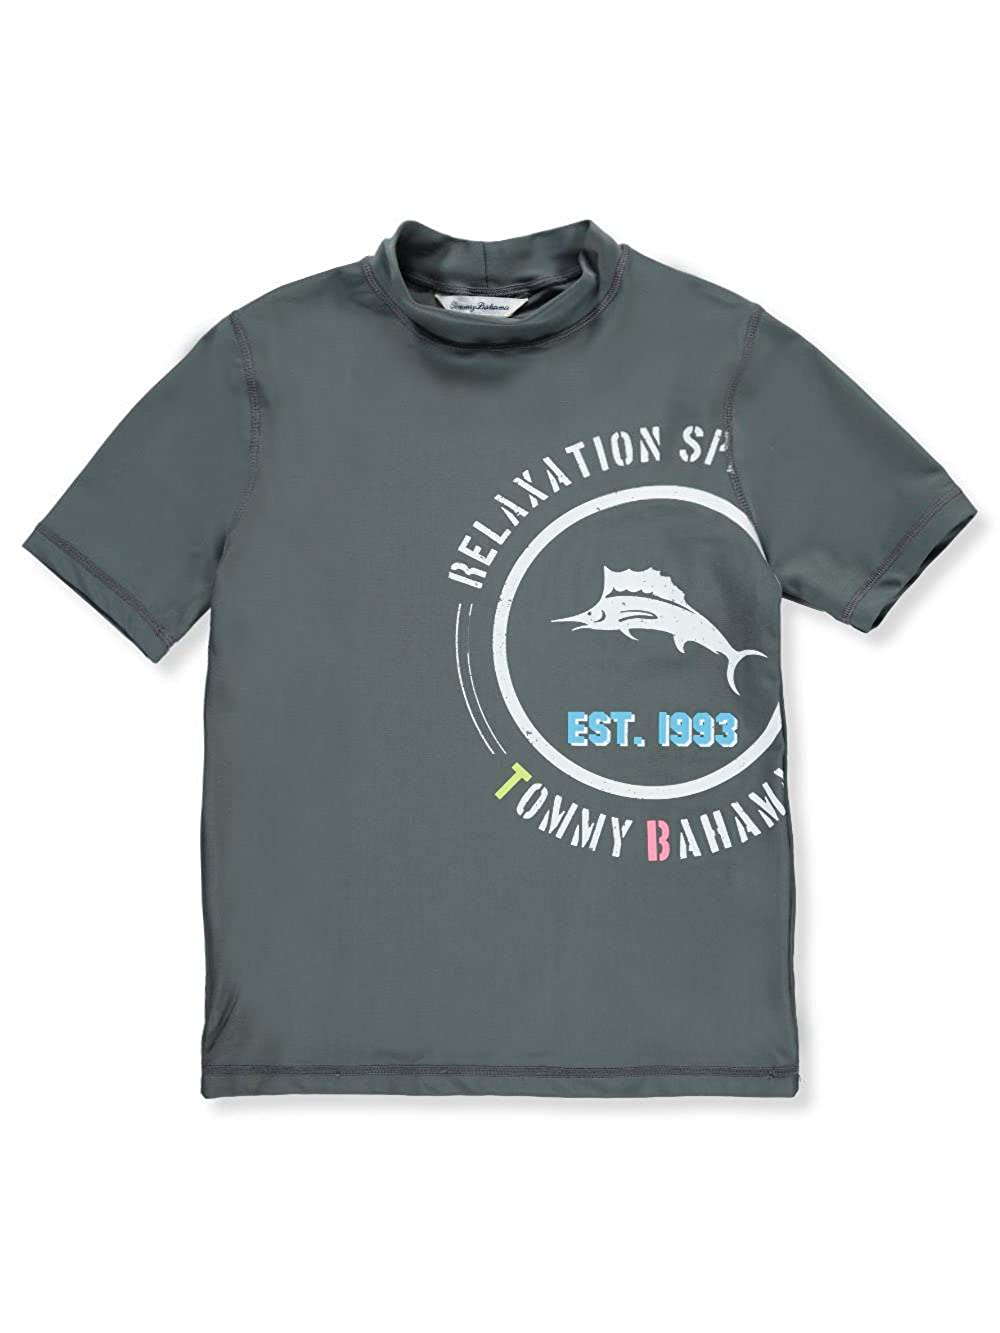 Tommy Bahama Boys' Rash Guard